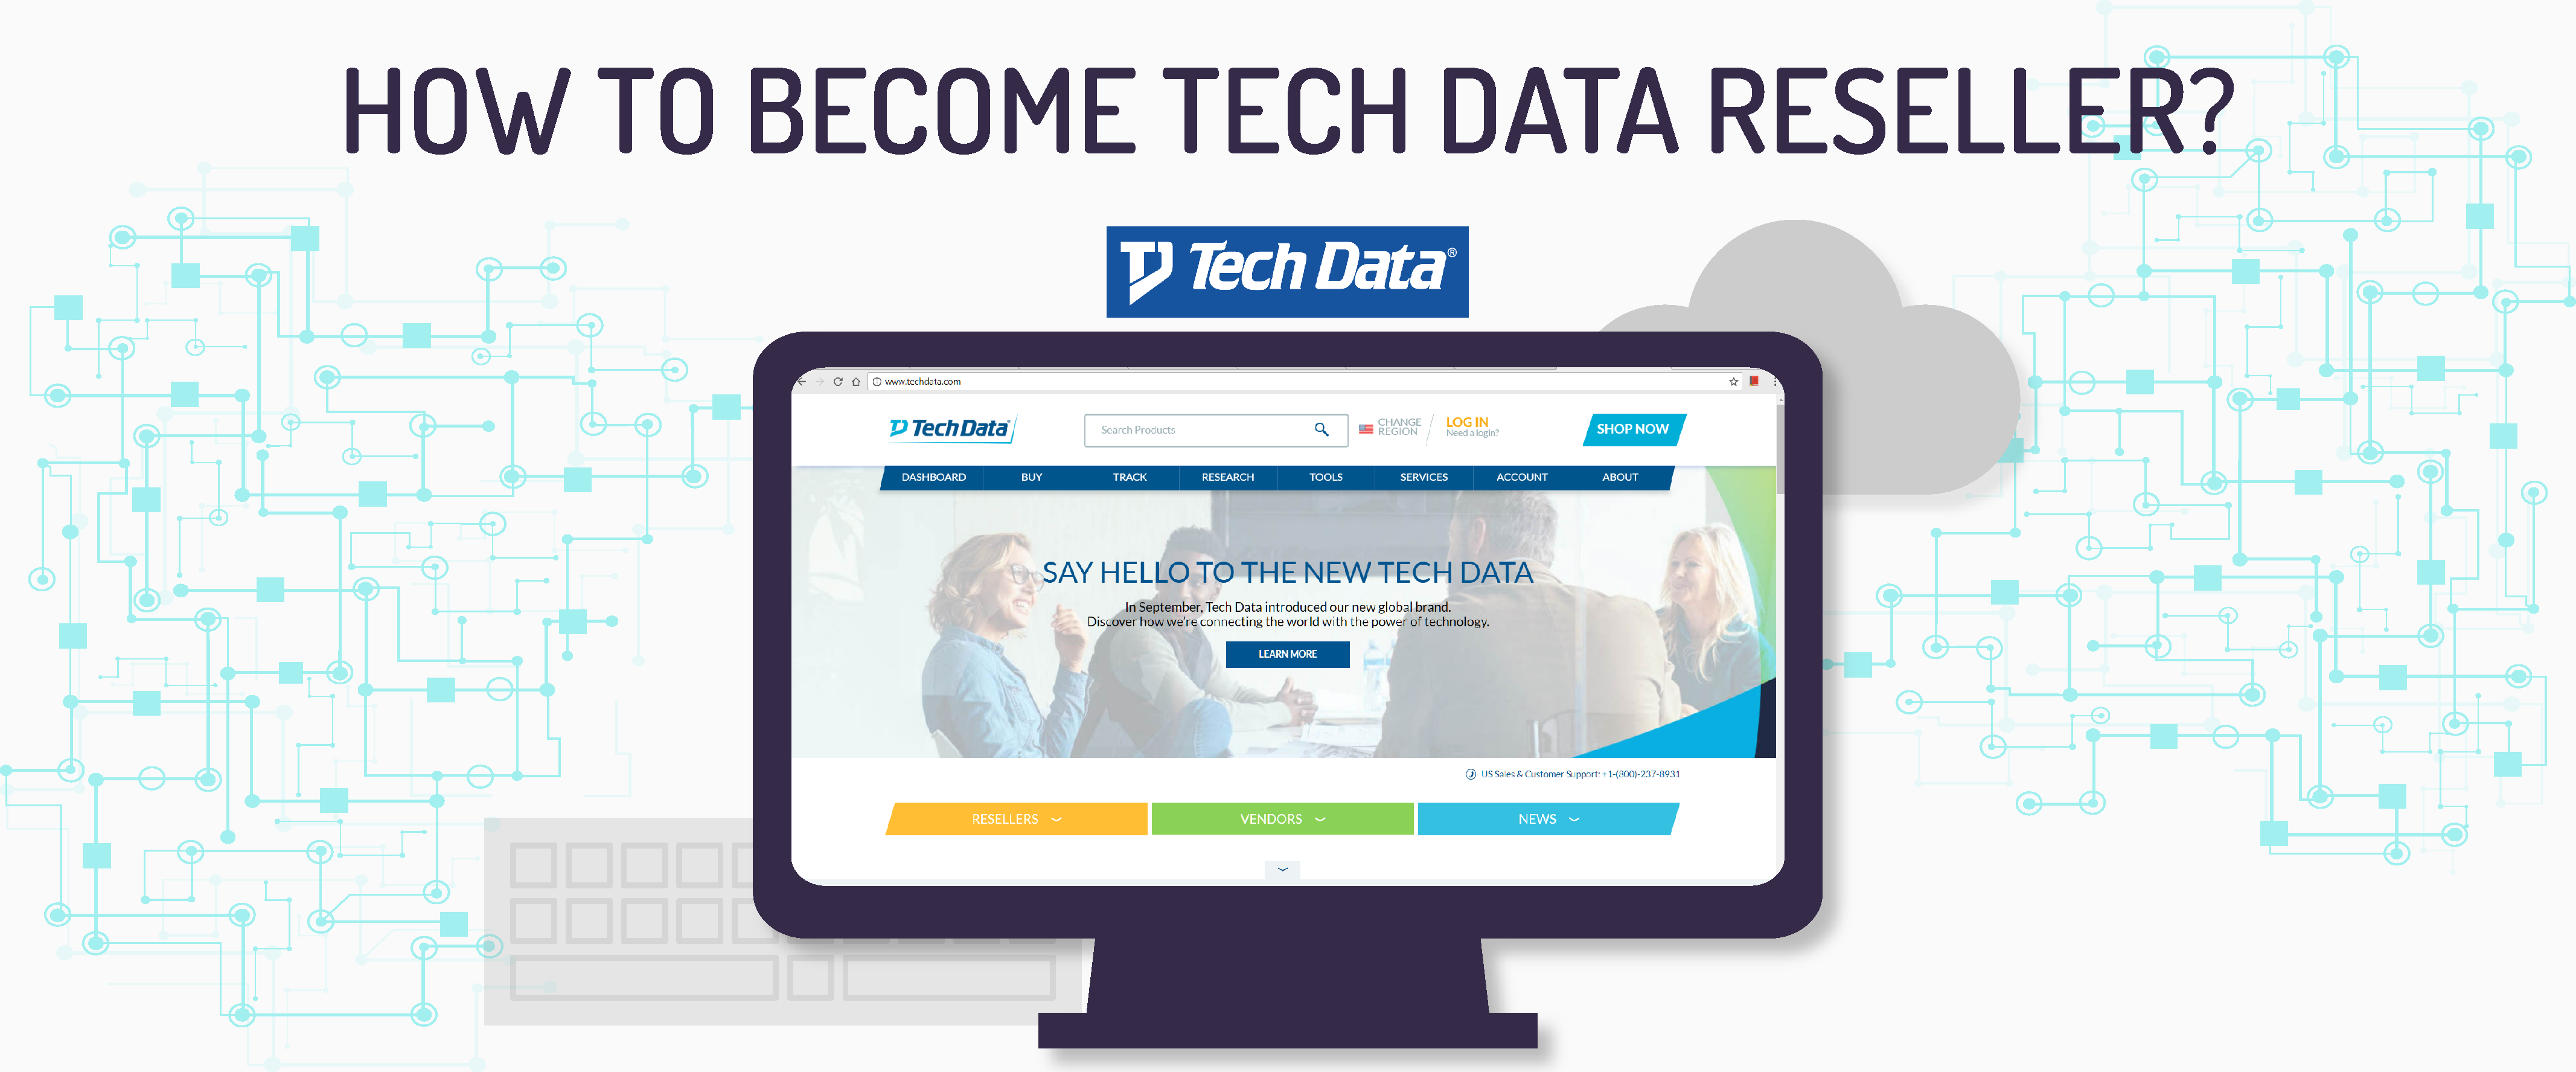 How to Become Tech Data Reseller